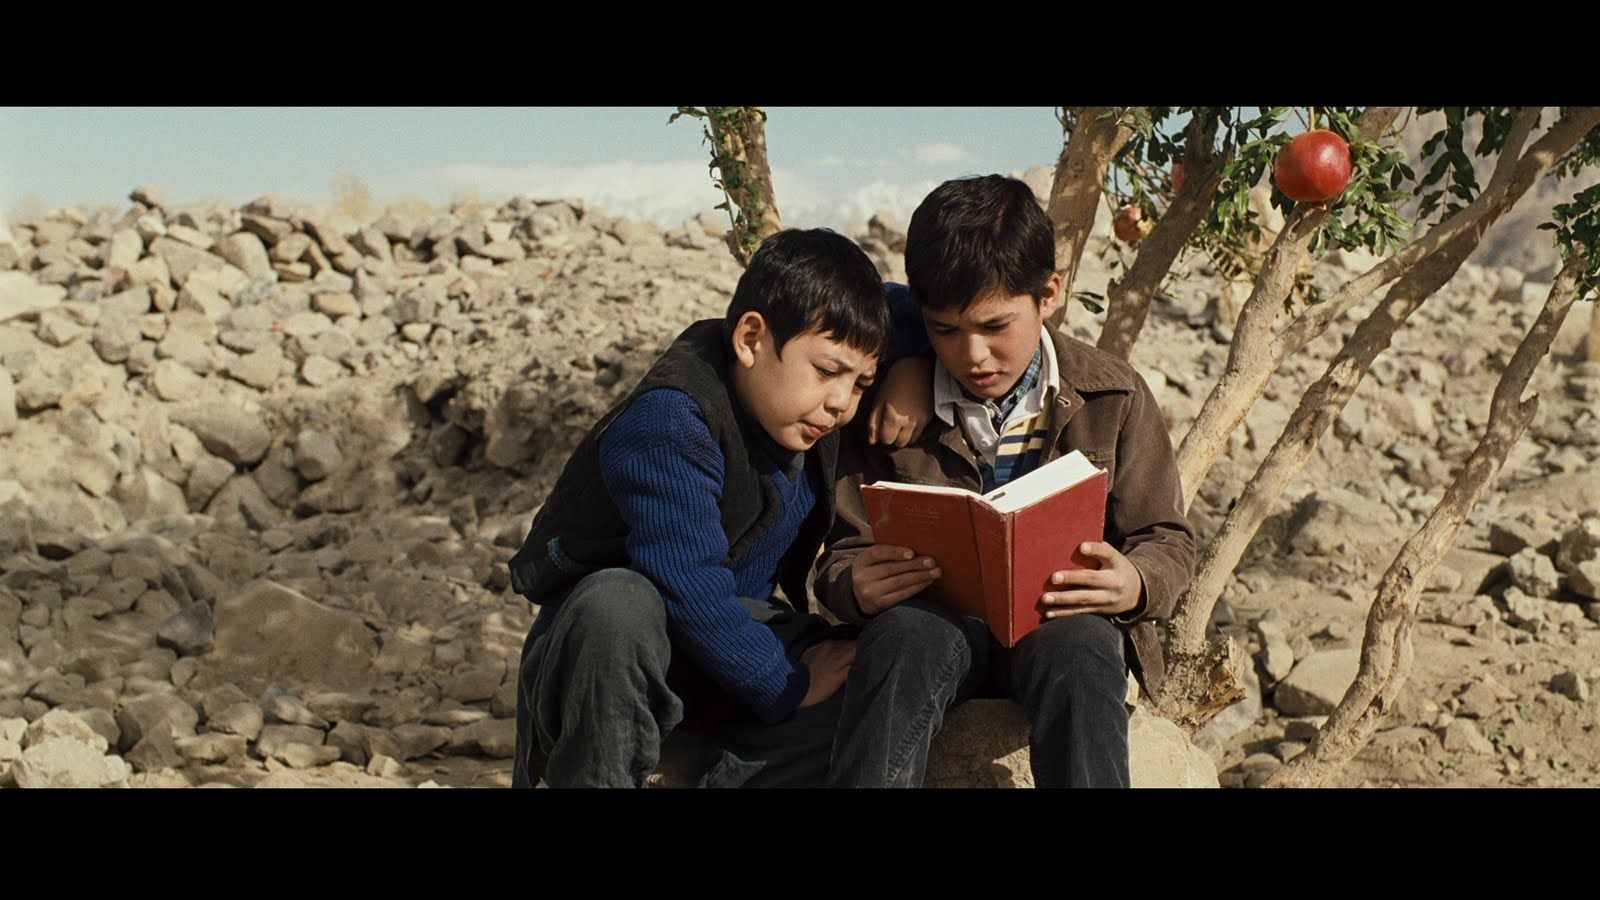 1000 images about the kite runner runners john 1000 images about the kite runner runners john green and khaled hosseini